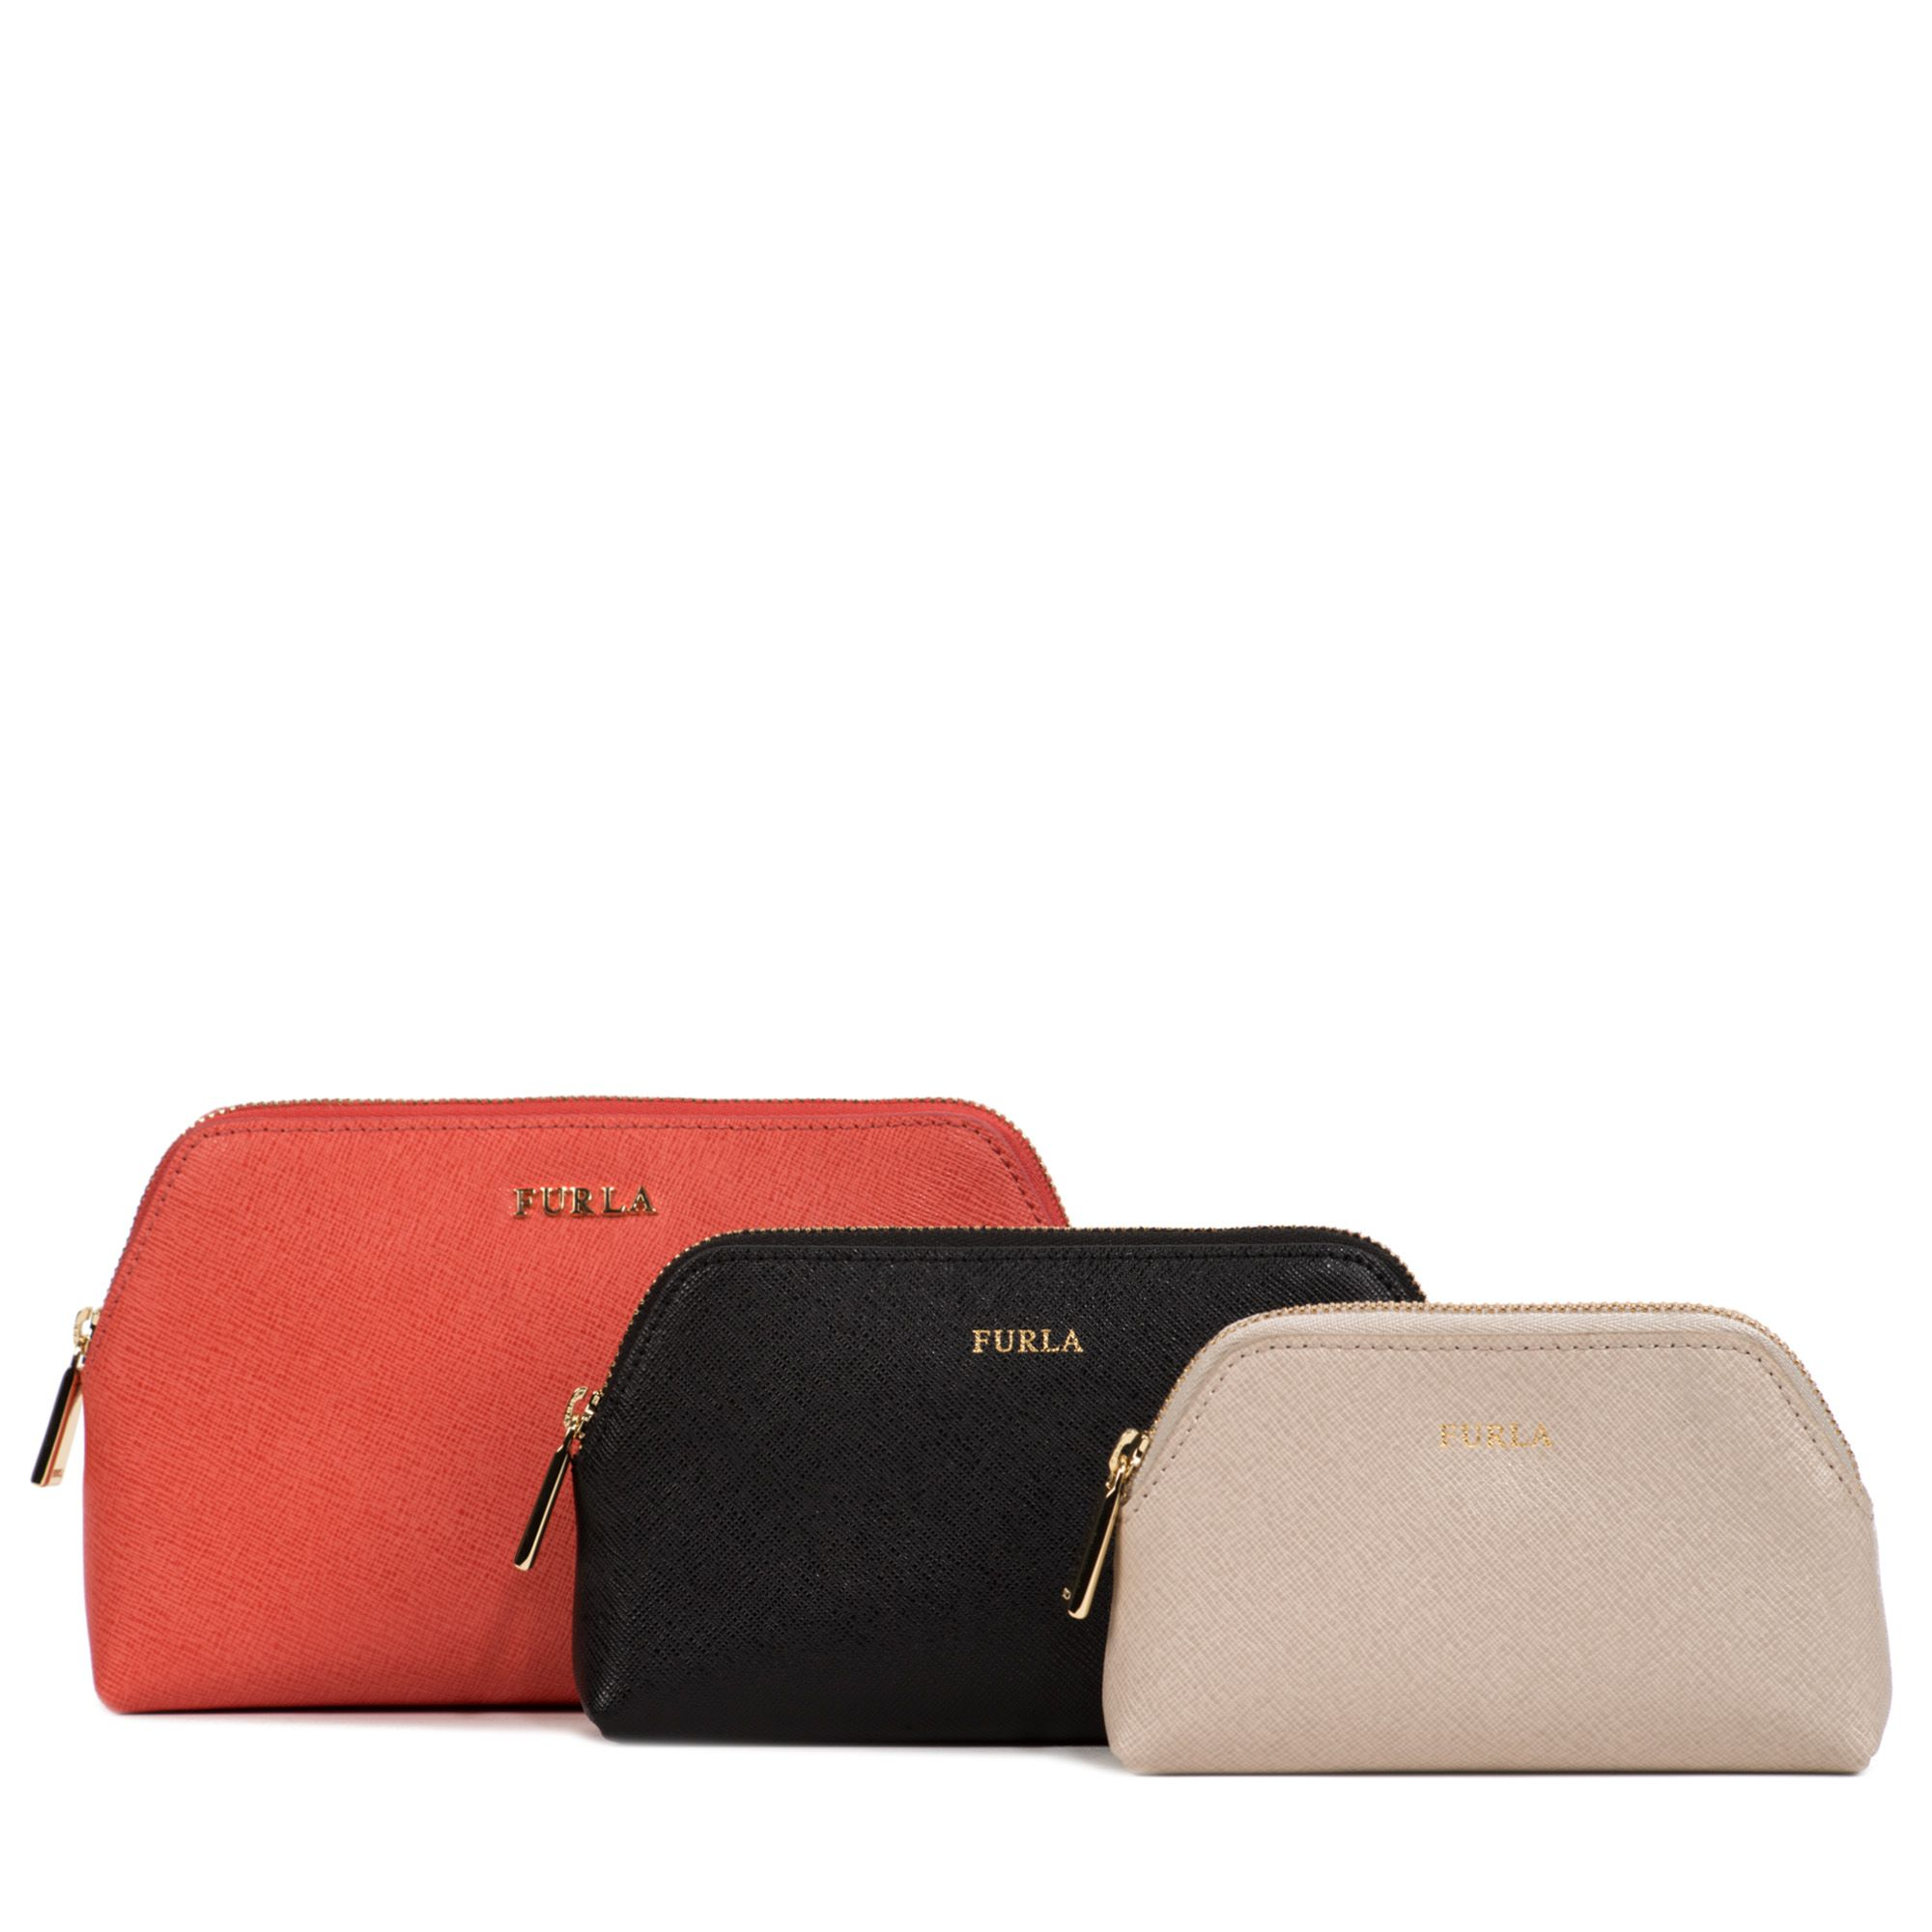 Small Leather Goods - Pouches Furla zBdIv